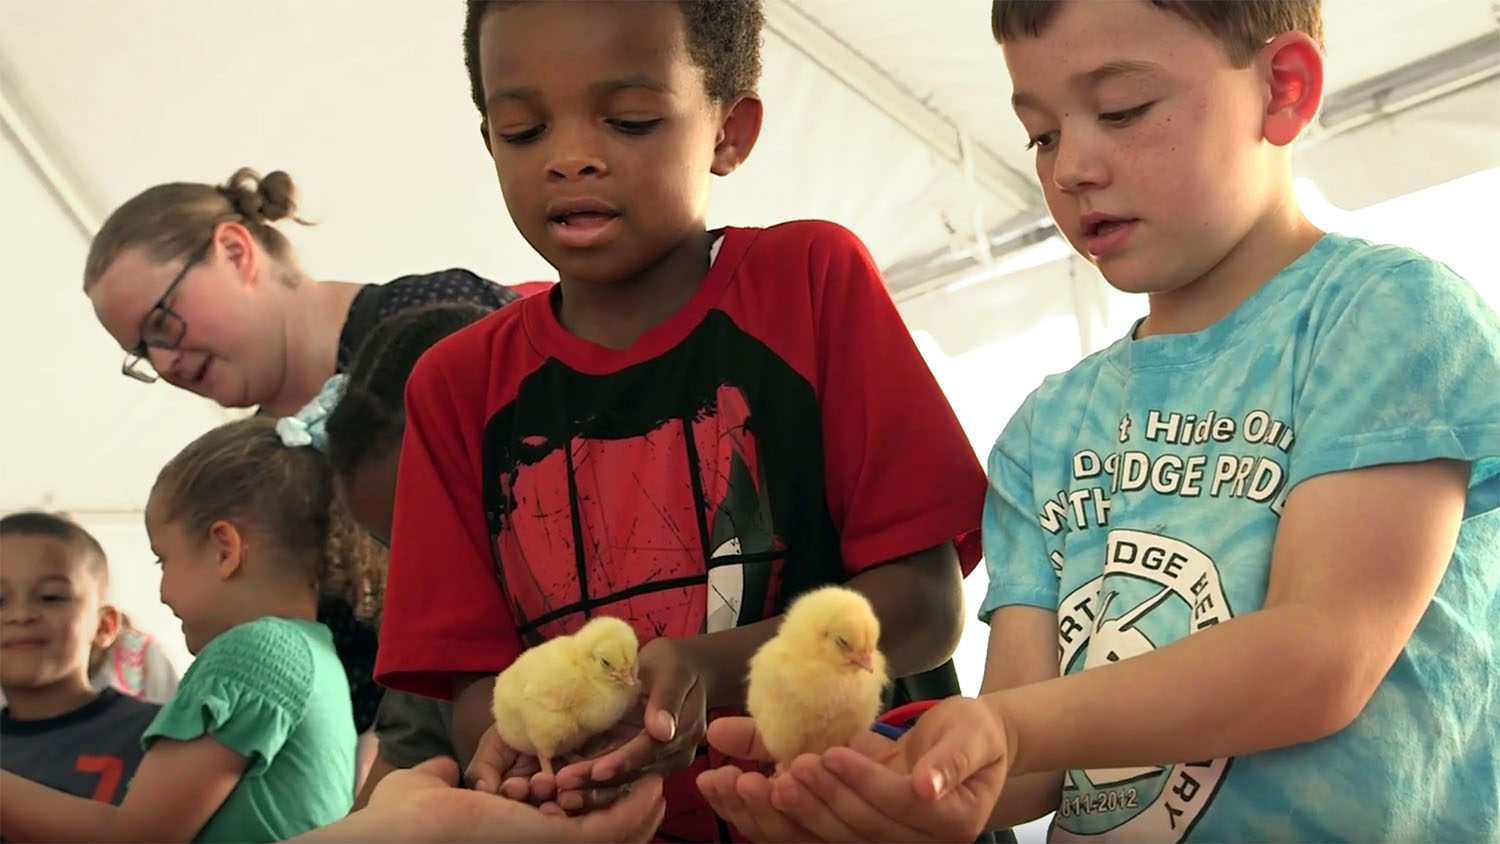 Two children holding two chicks